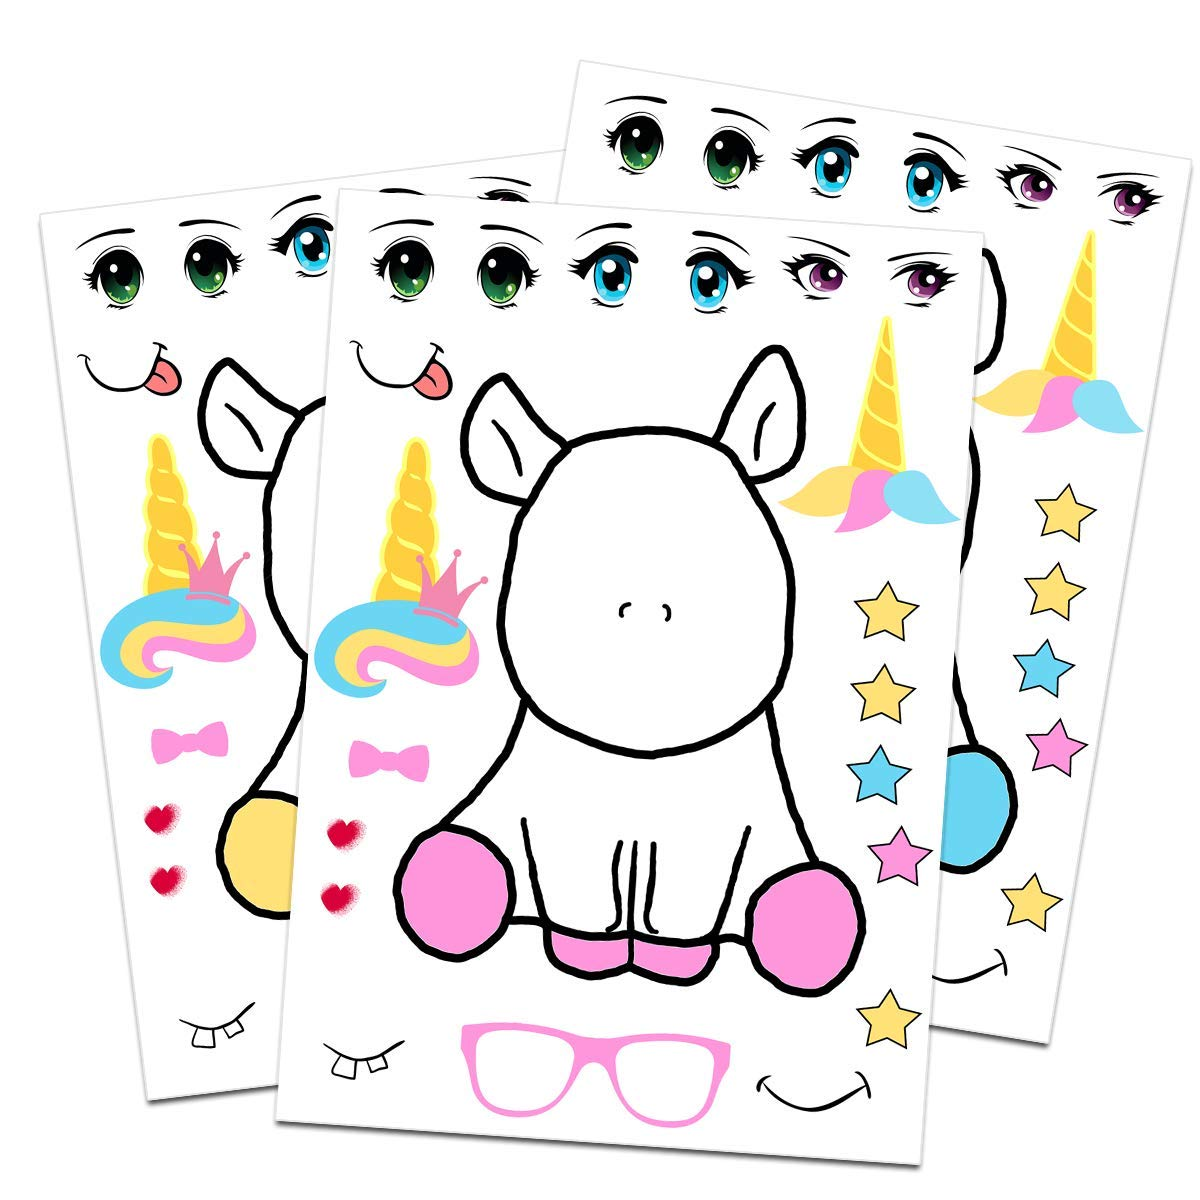 24 Make A Unicorn Stickers For Kids Rainbow Unicorn Theme Birthday Party Favors Let Your Girls or Boys Get Creative Design Their Favorite Unicorn Stickers Fun Craft Project For Children 3